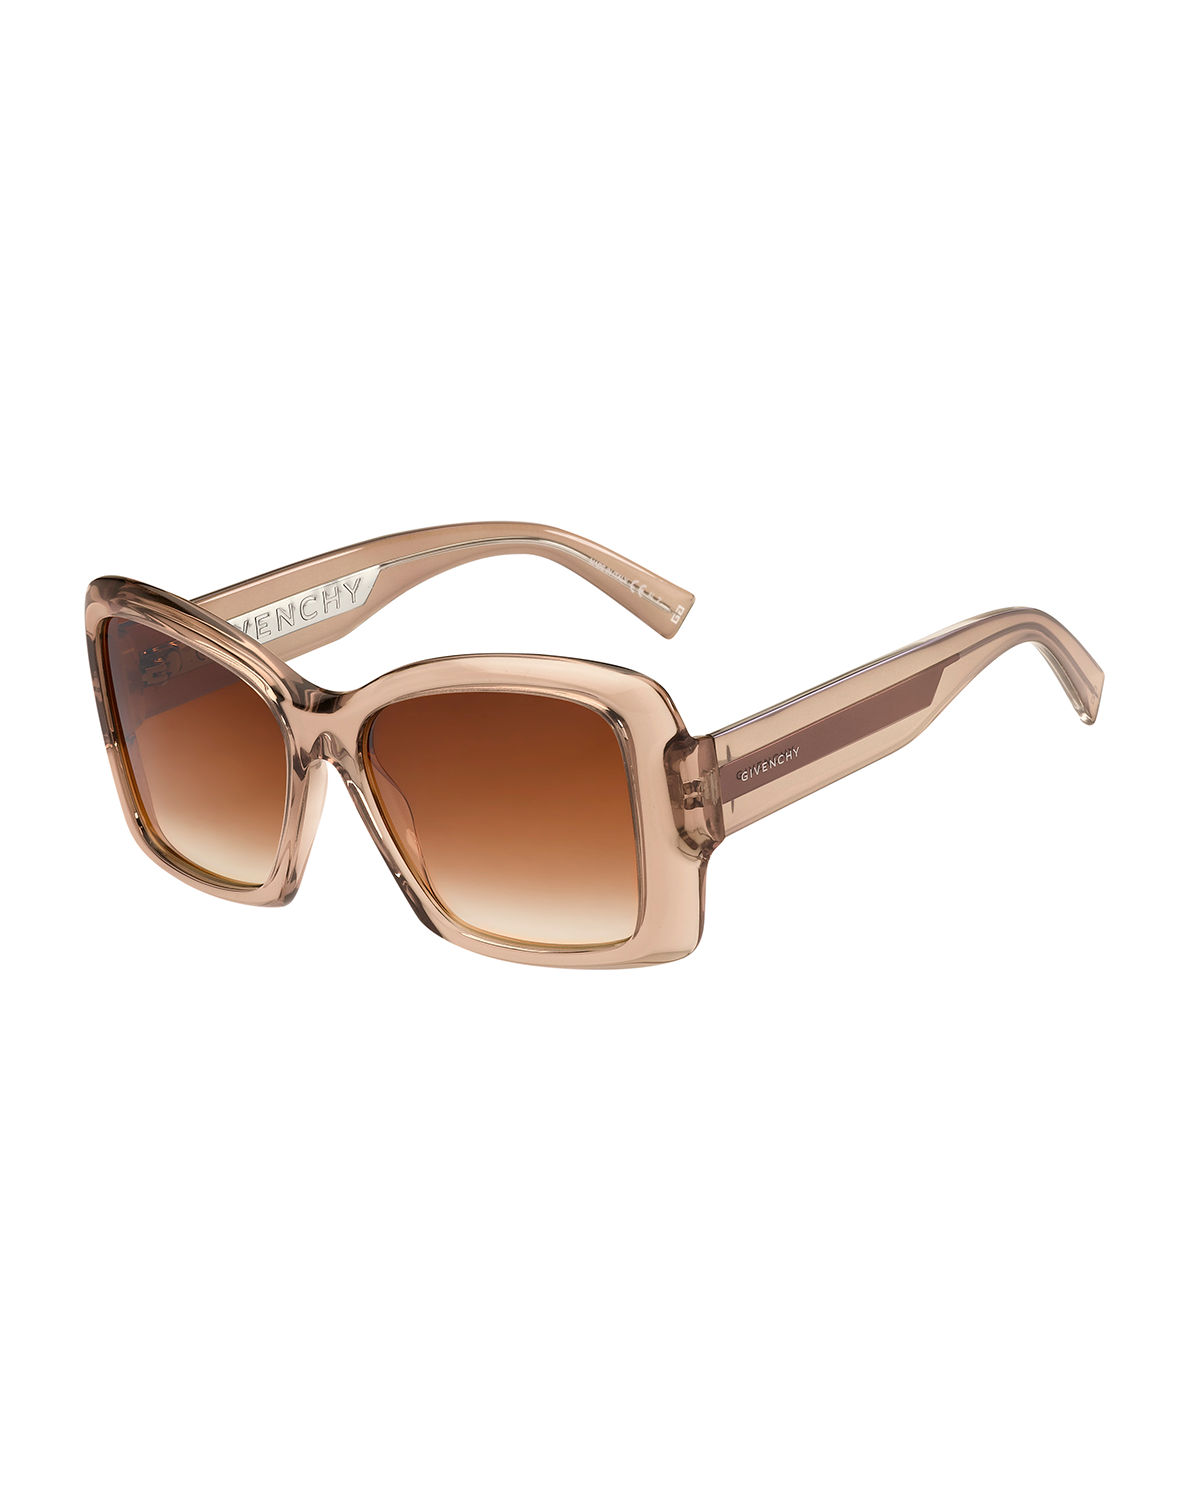 Givenchy OVERSIZED SQUARE ACETATE SUNGLASSES